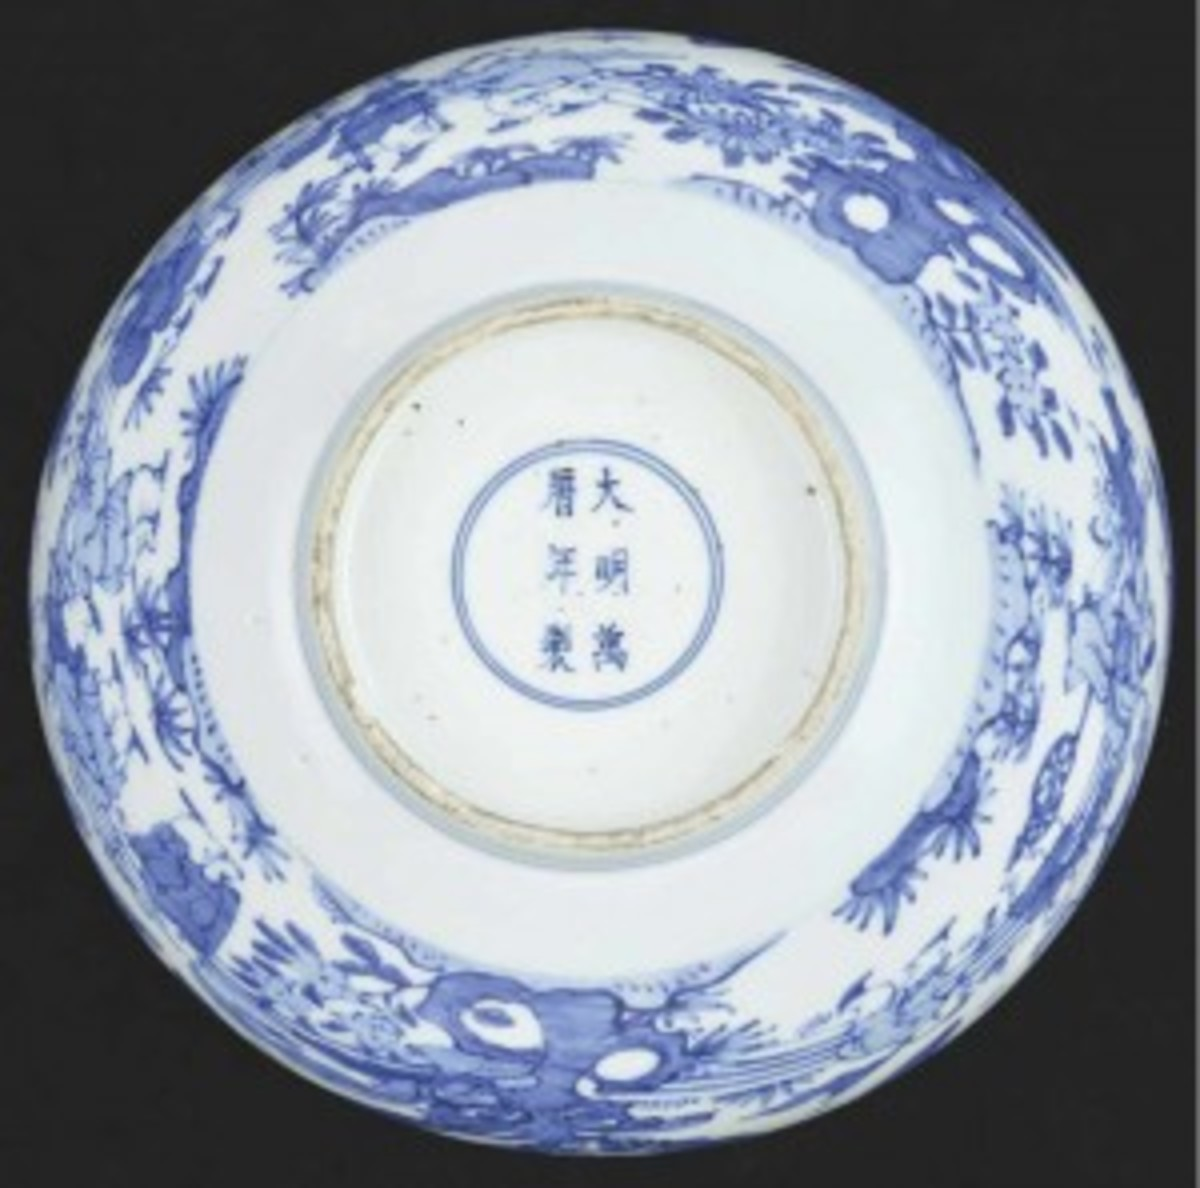 Chinese porcelain markings